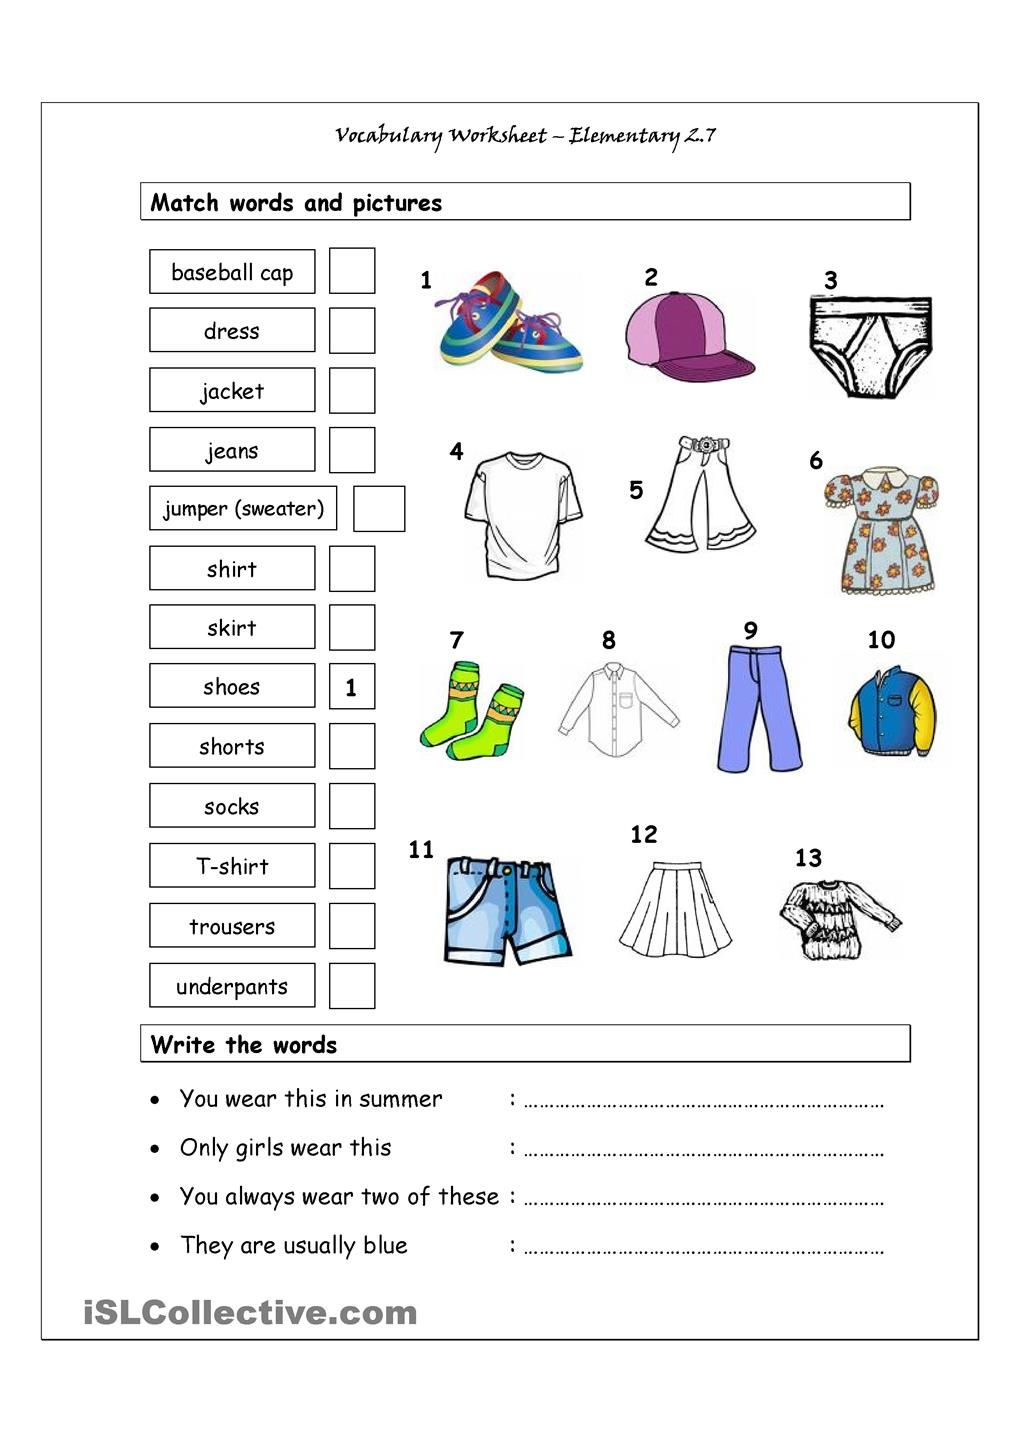 vocabulary matching worksheet elementary 2 7 clothes english for children englisch f r. Black Bedroom Furniture Sets. Home Design Ideas